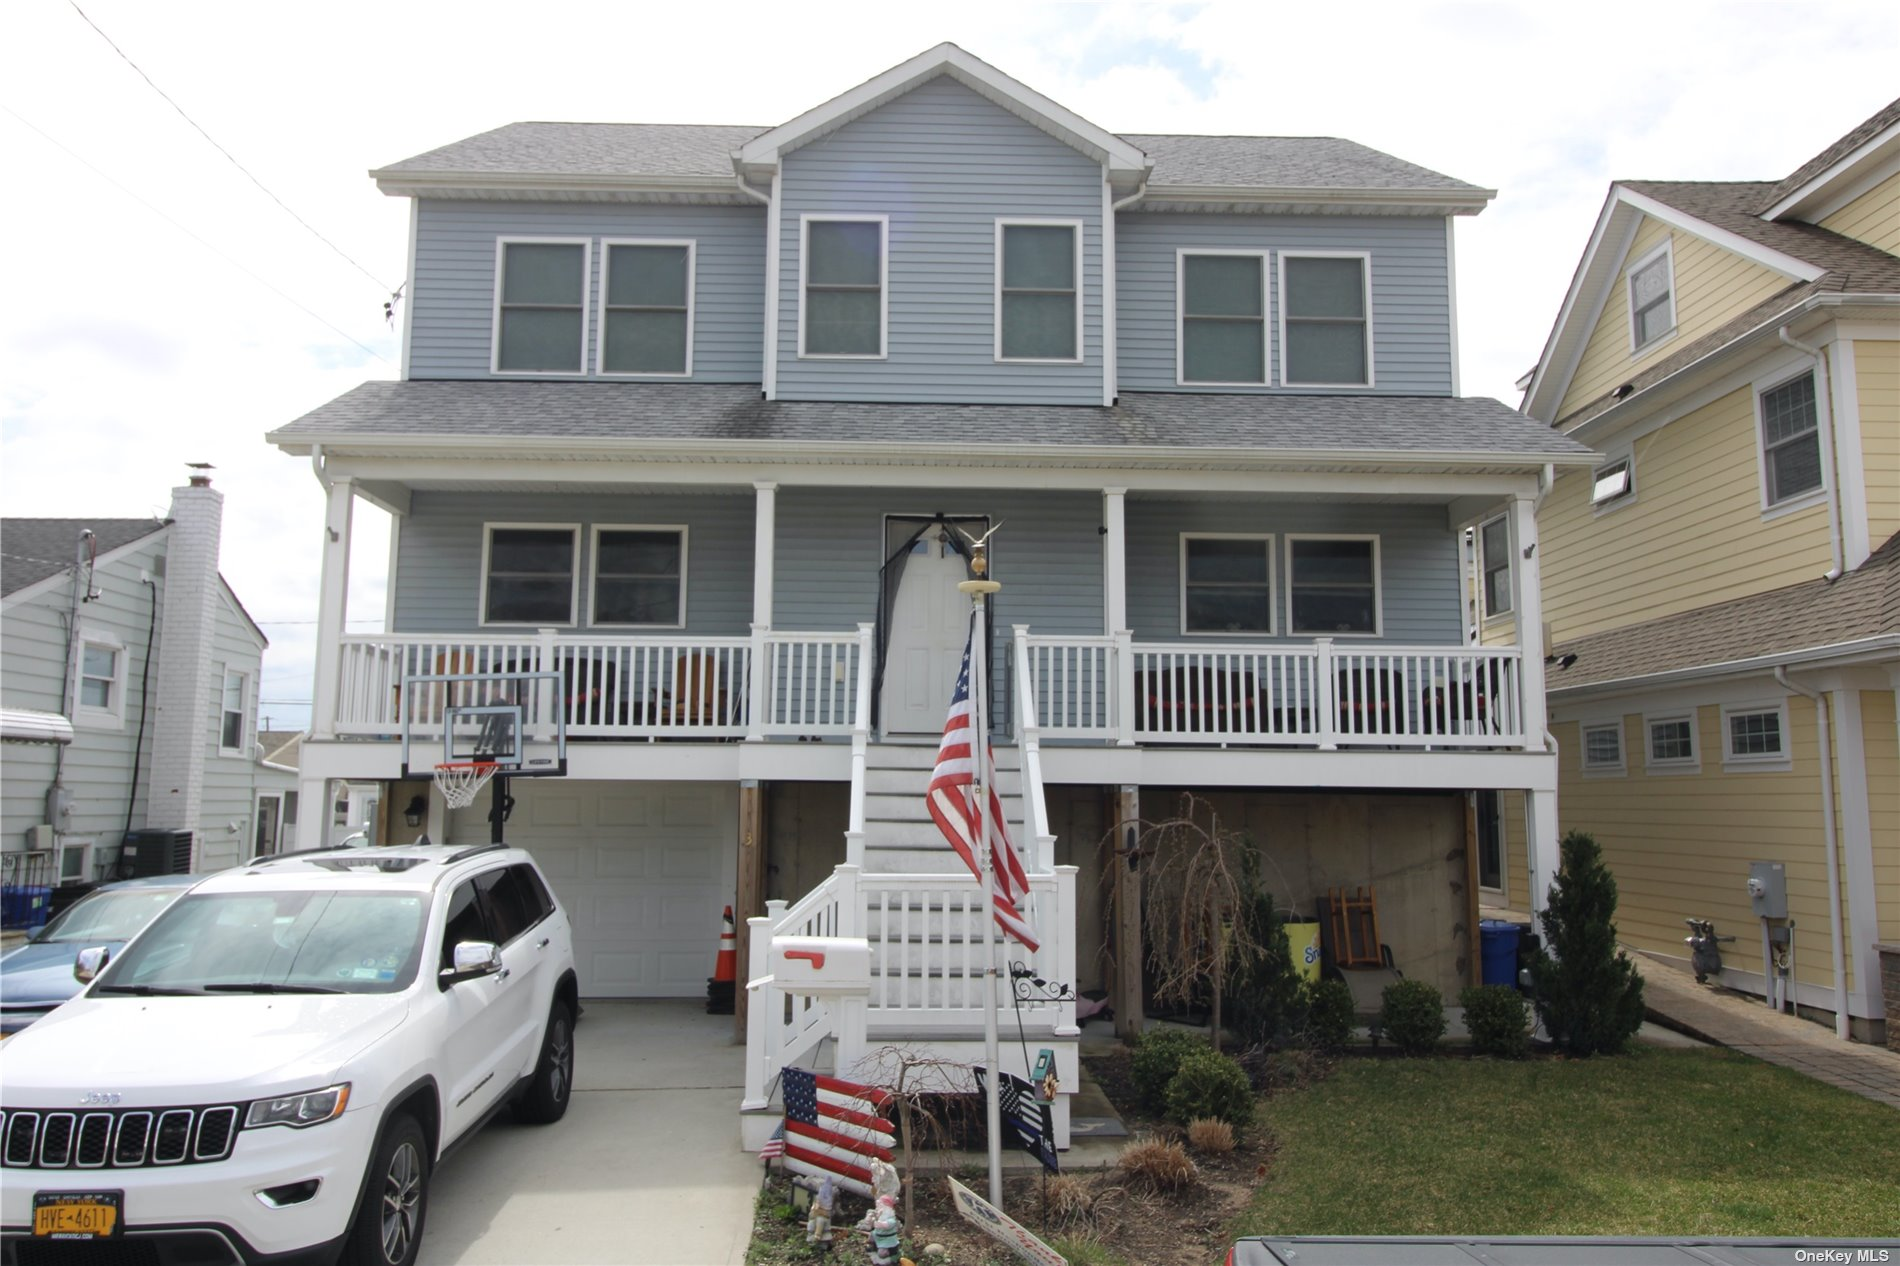 Large 4 Bedroom Colonial on Thixton Canal. This is a Fully FEMA Compliant Home On a Quiet Dead End Block. 2 Zone CAC, Tankless Hot Water Heater, 3 Zone Sprinkler System, InDoor Fire Sprinklers, Large Attic & 2 Balconies.